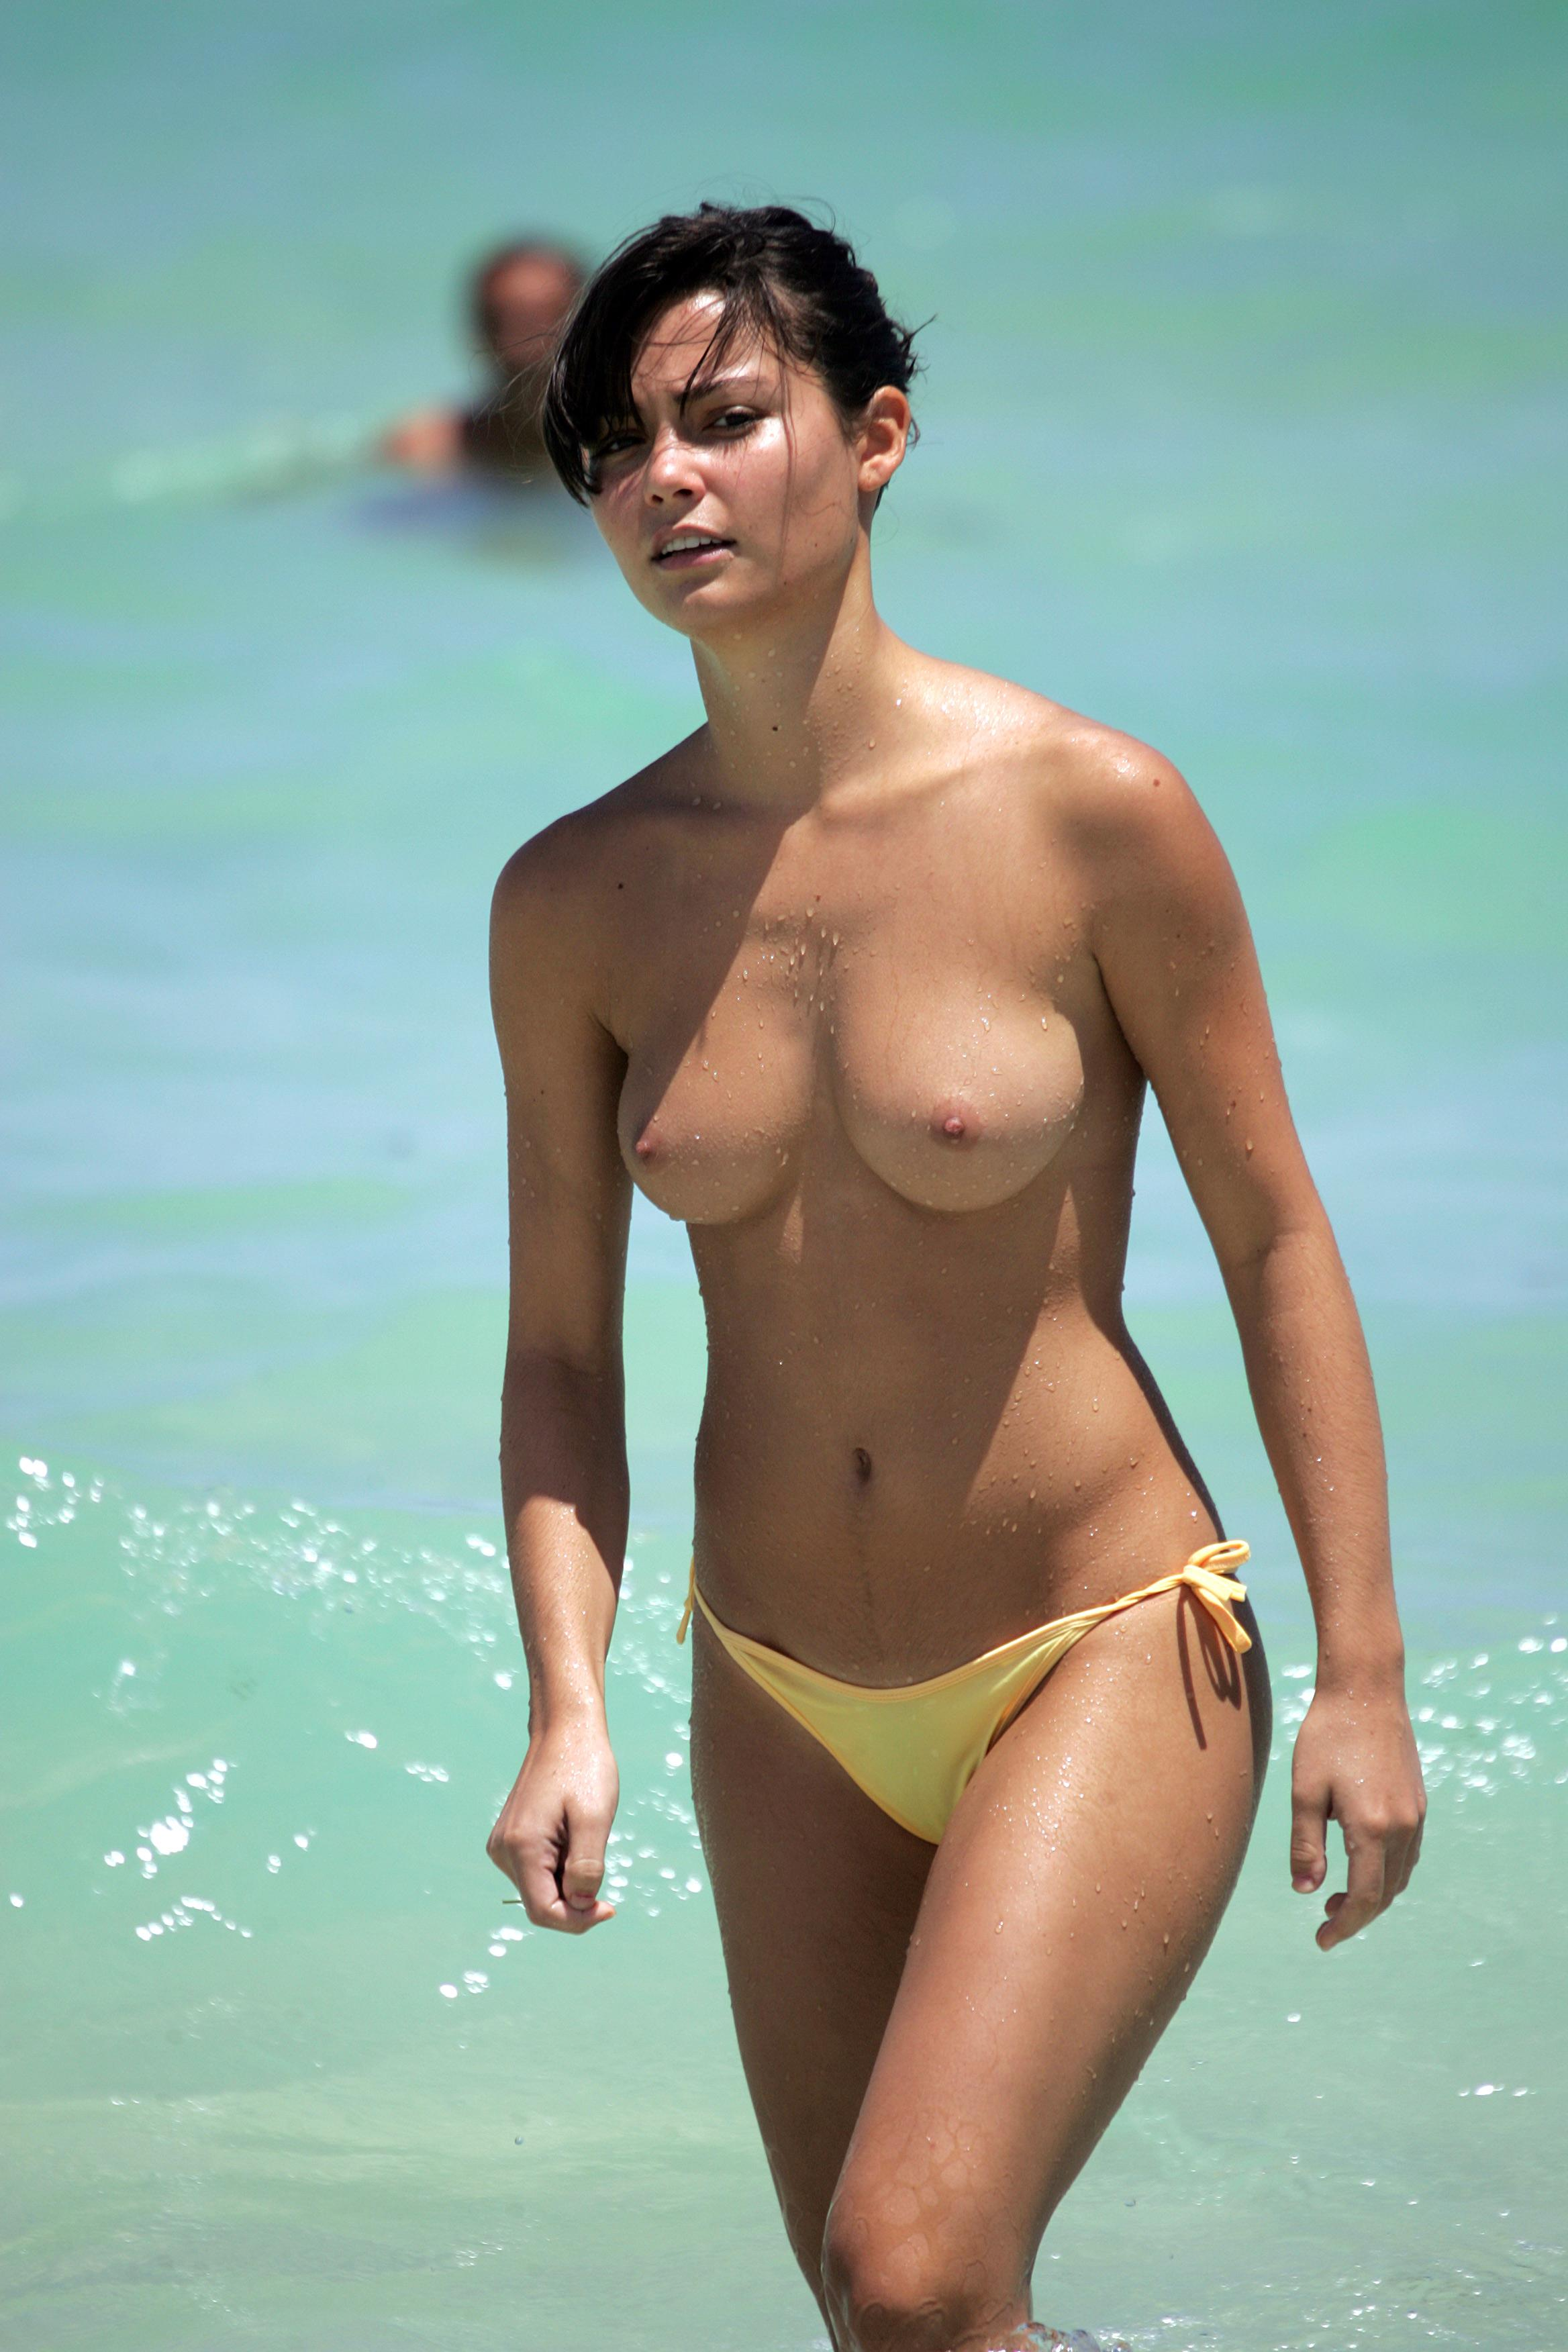 Smokin hot brunette enjoying the ocean while topless